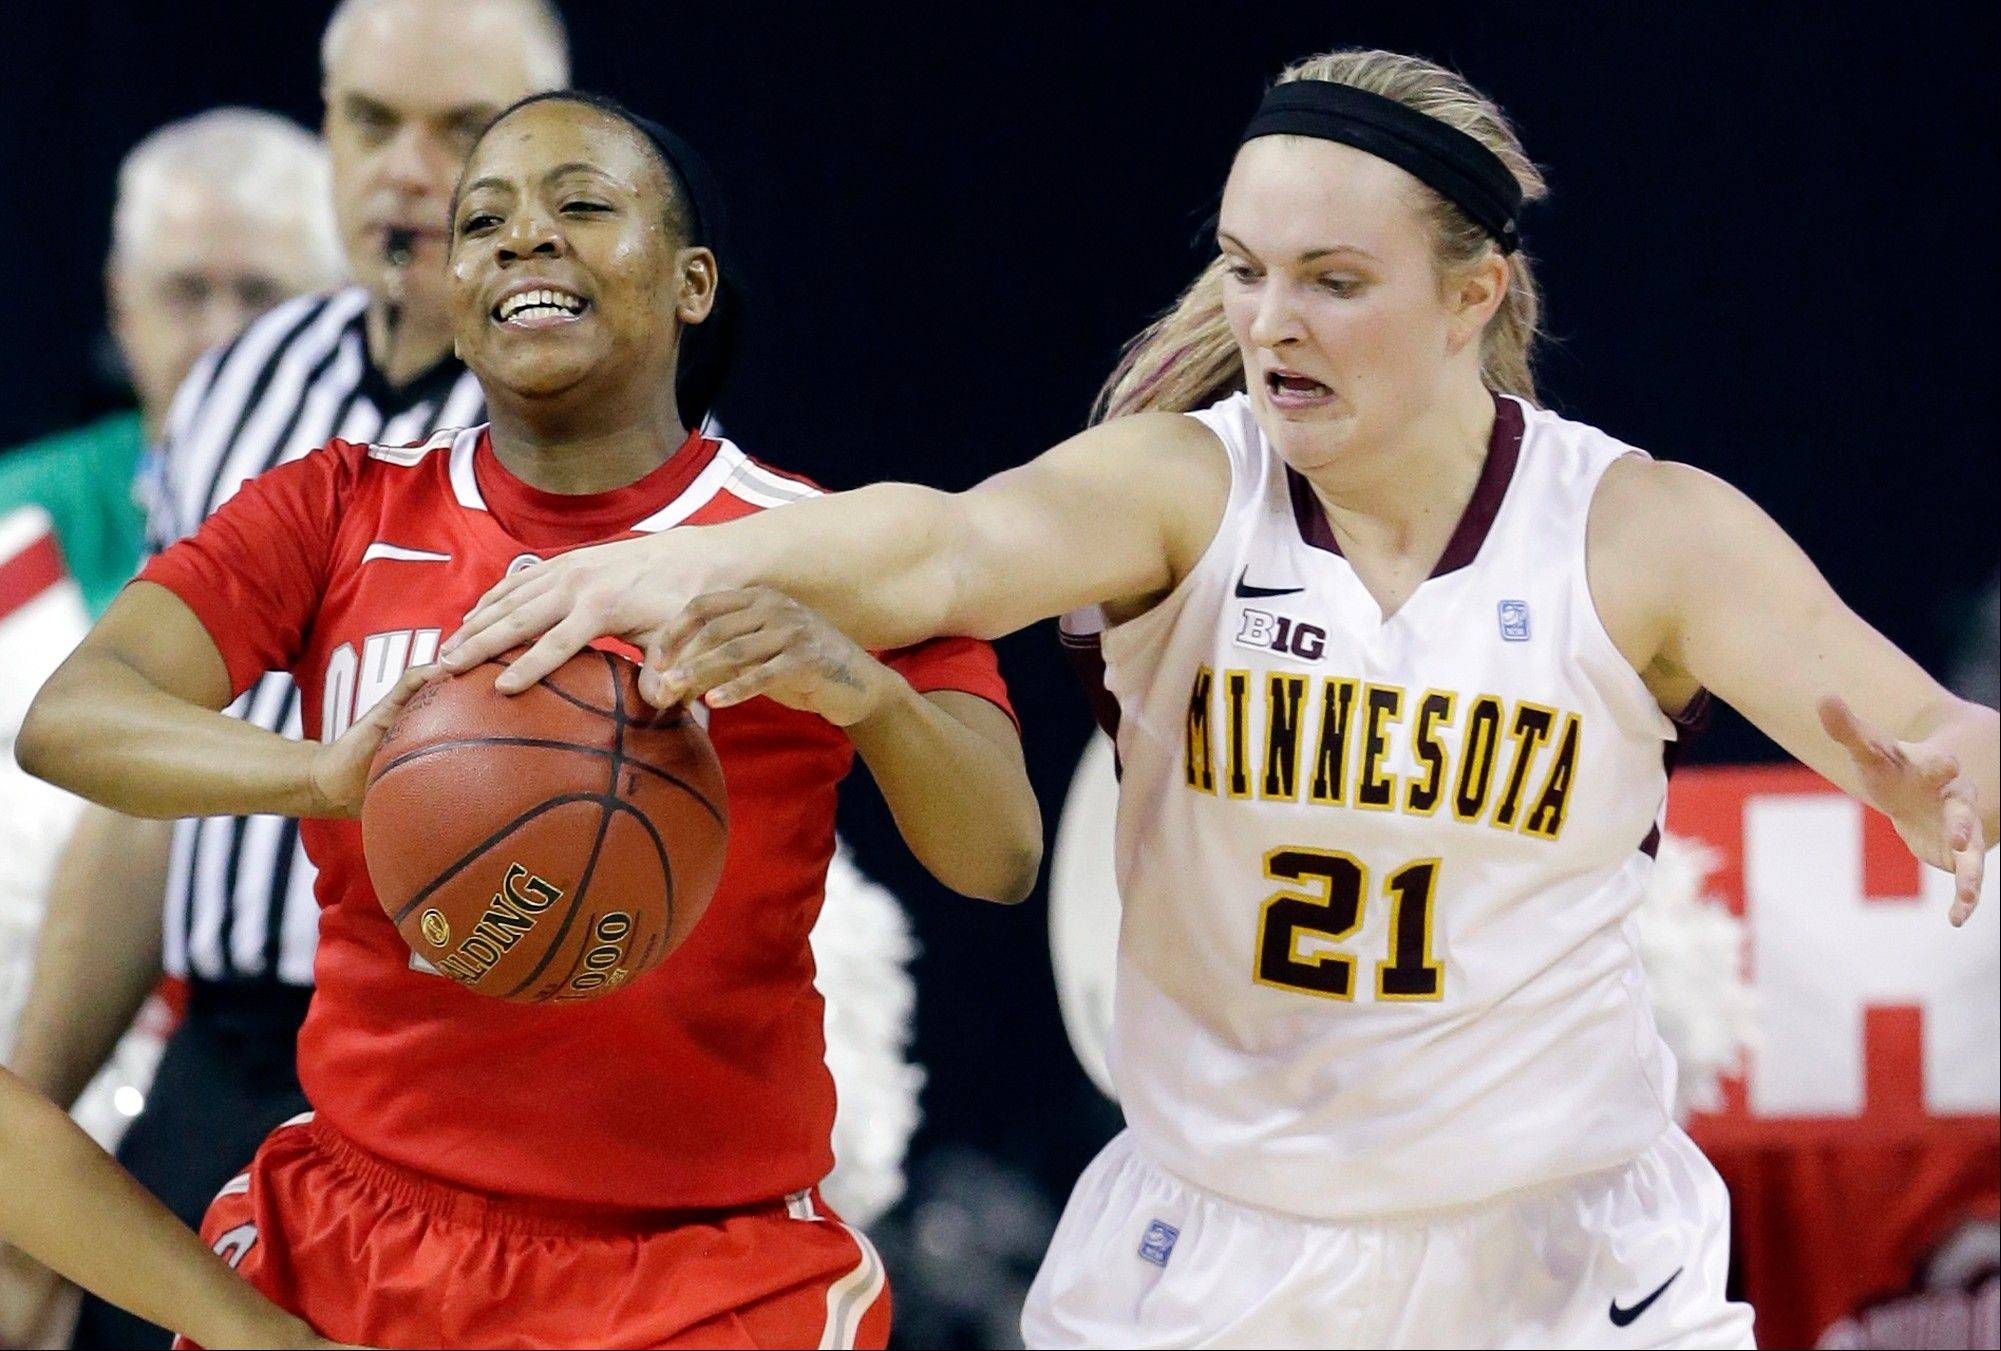 Ohio State guard Ameryst Alston, left, looks to a pass as Minnesota guard Sari Noga guards during the second half of an NCAA college basketball game in the Big Ten Conference women's tournament in Hoffman Estates Thursday.